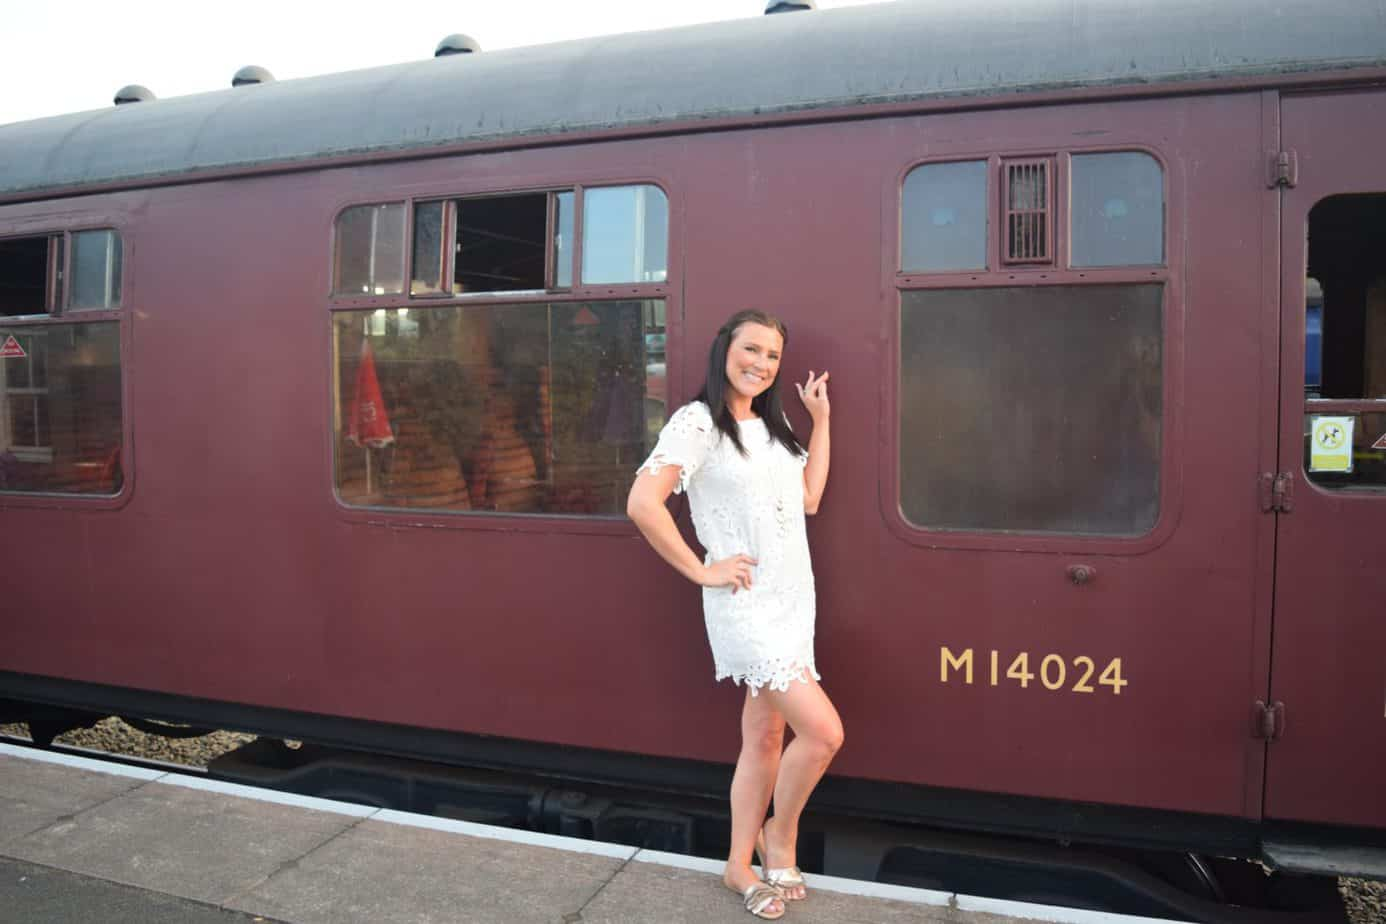 Me outside a steam engine for our Buckt activity